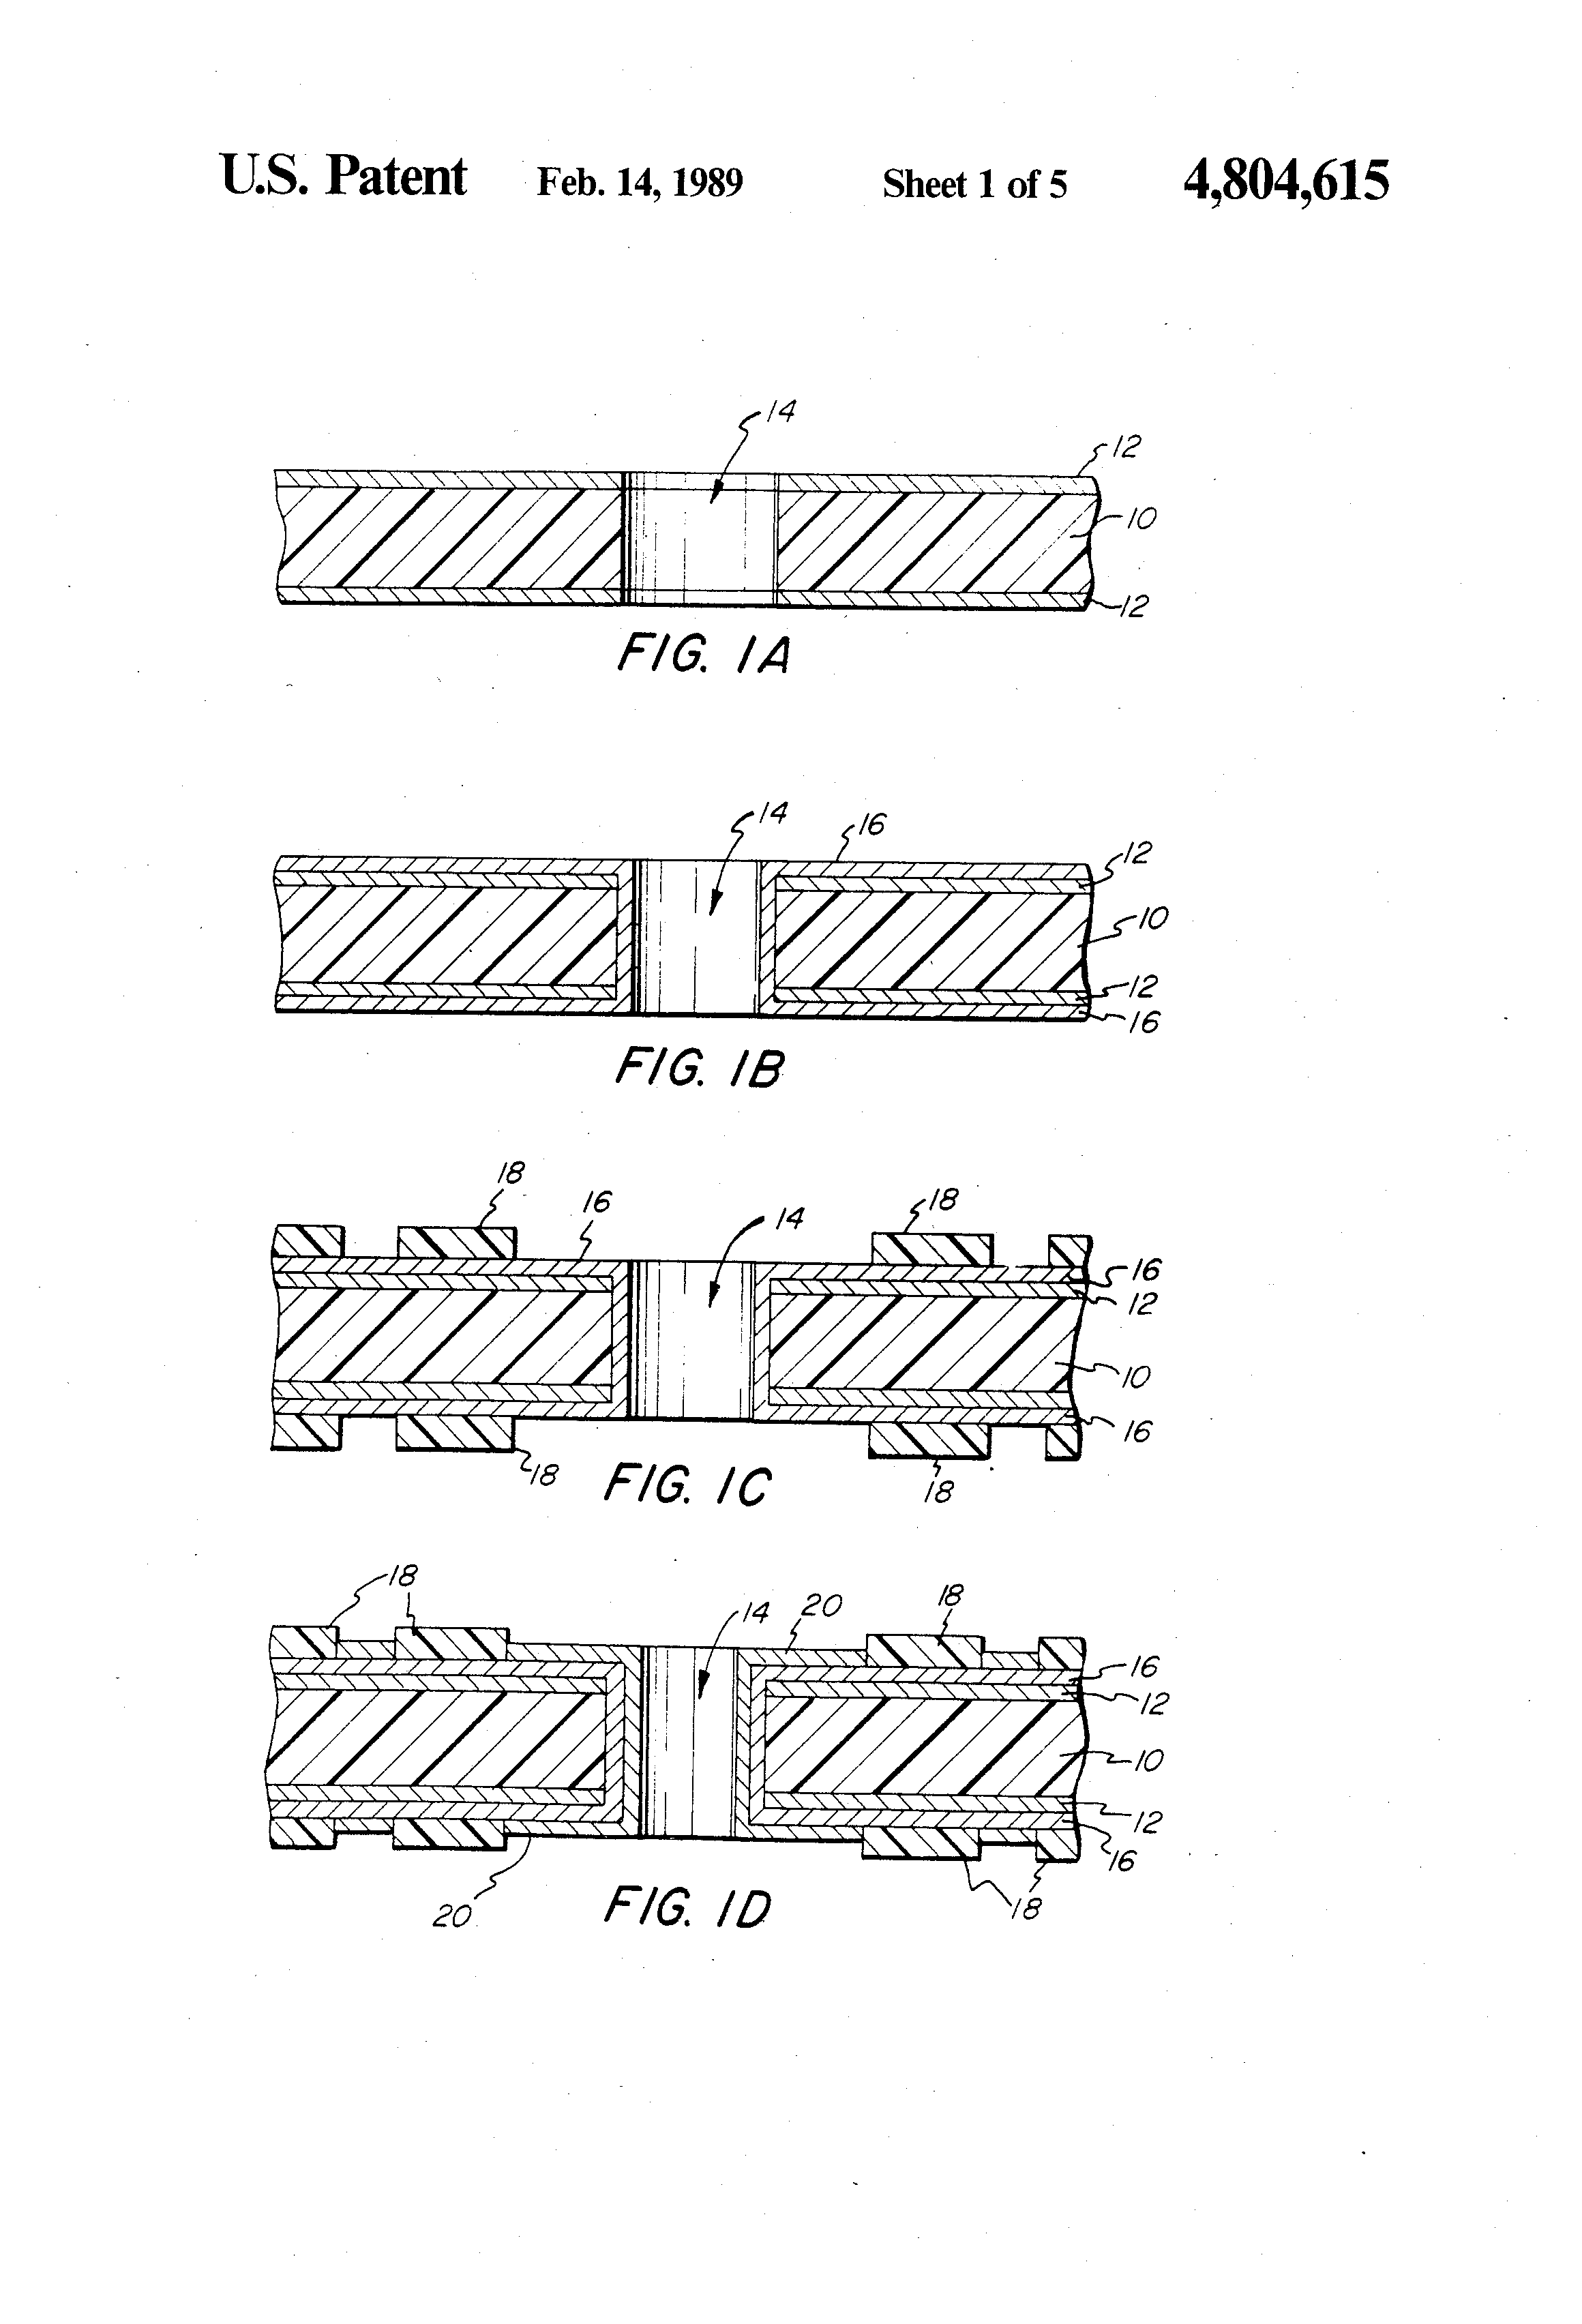 Brevet Us4804615 Method For Manufacture Of Printed Circuit Boards Metal Clad Double Sided Pcb Multilayer Board Fabrication Patent Drawing